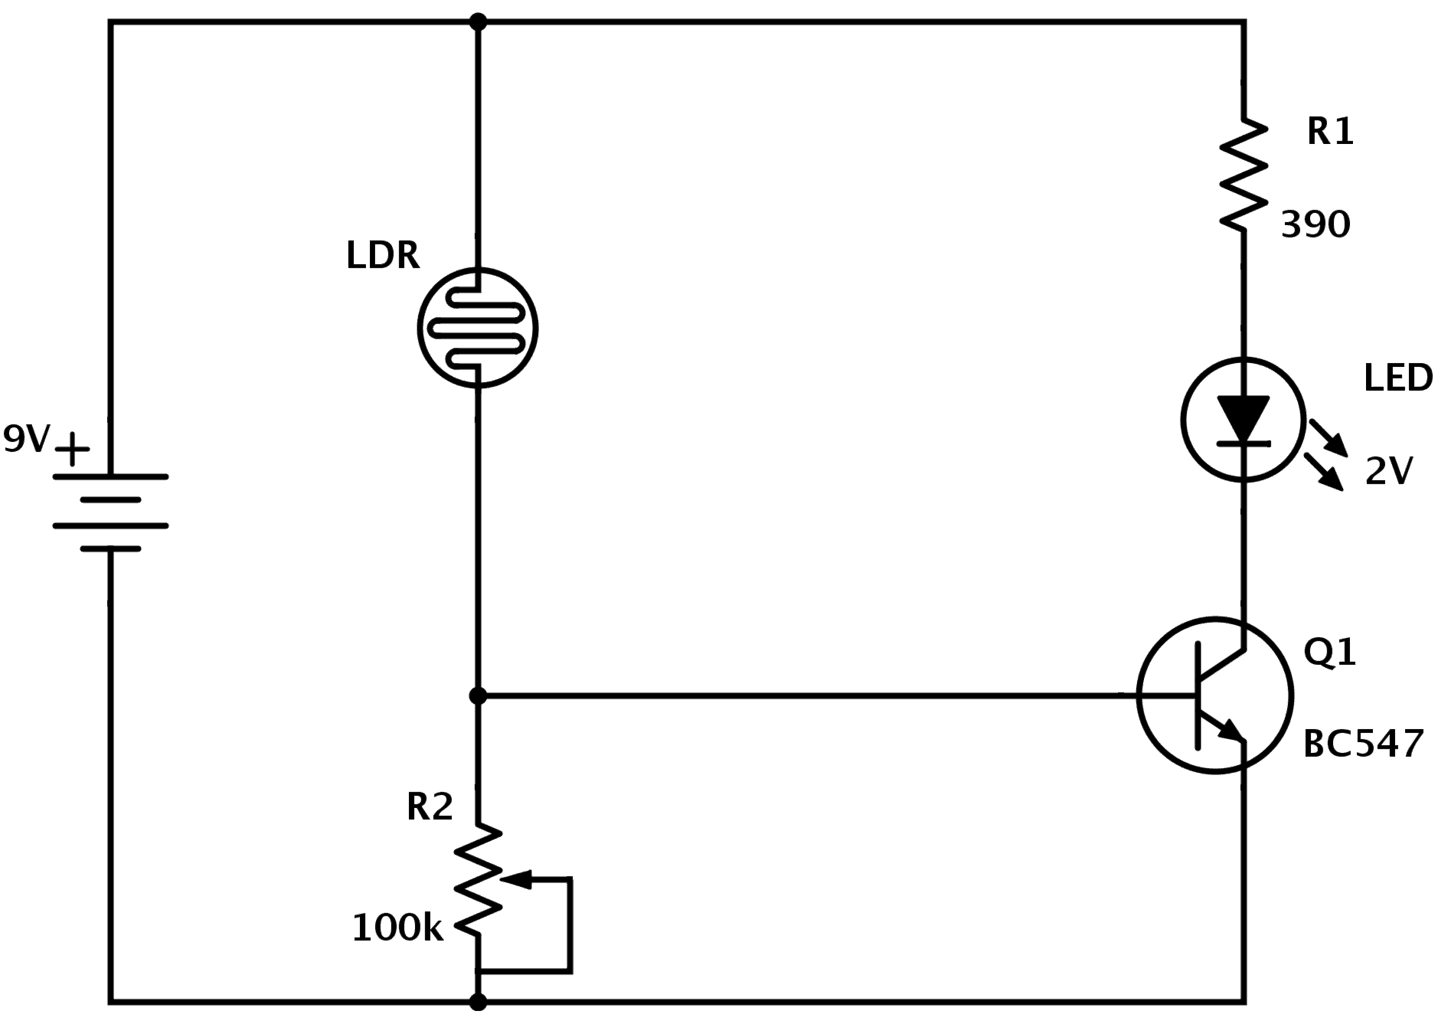 circuit diagram how to read and understand any schematic wiring schematic diagram 2007 impala